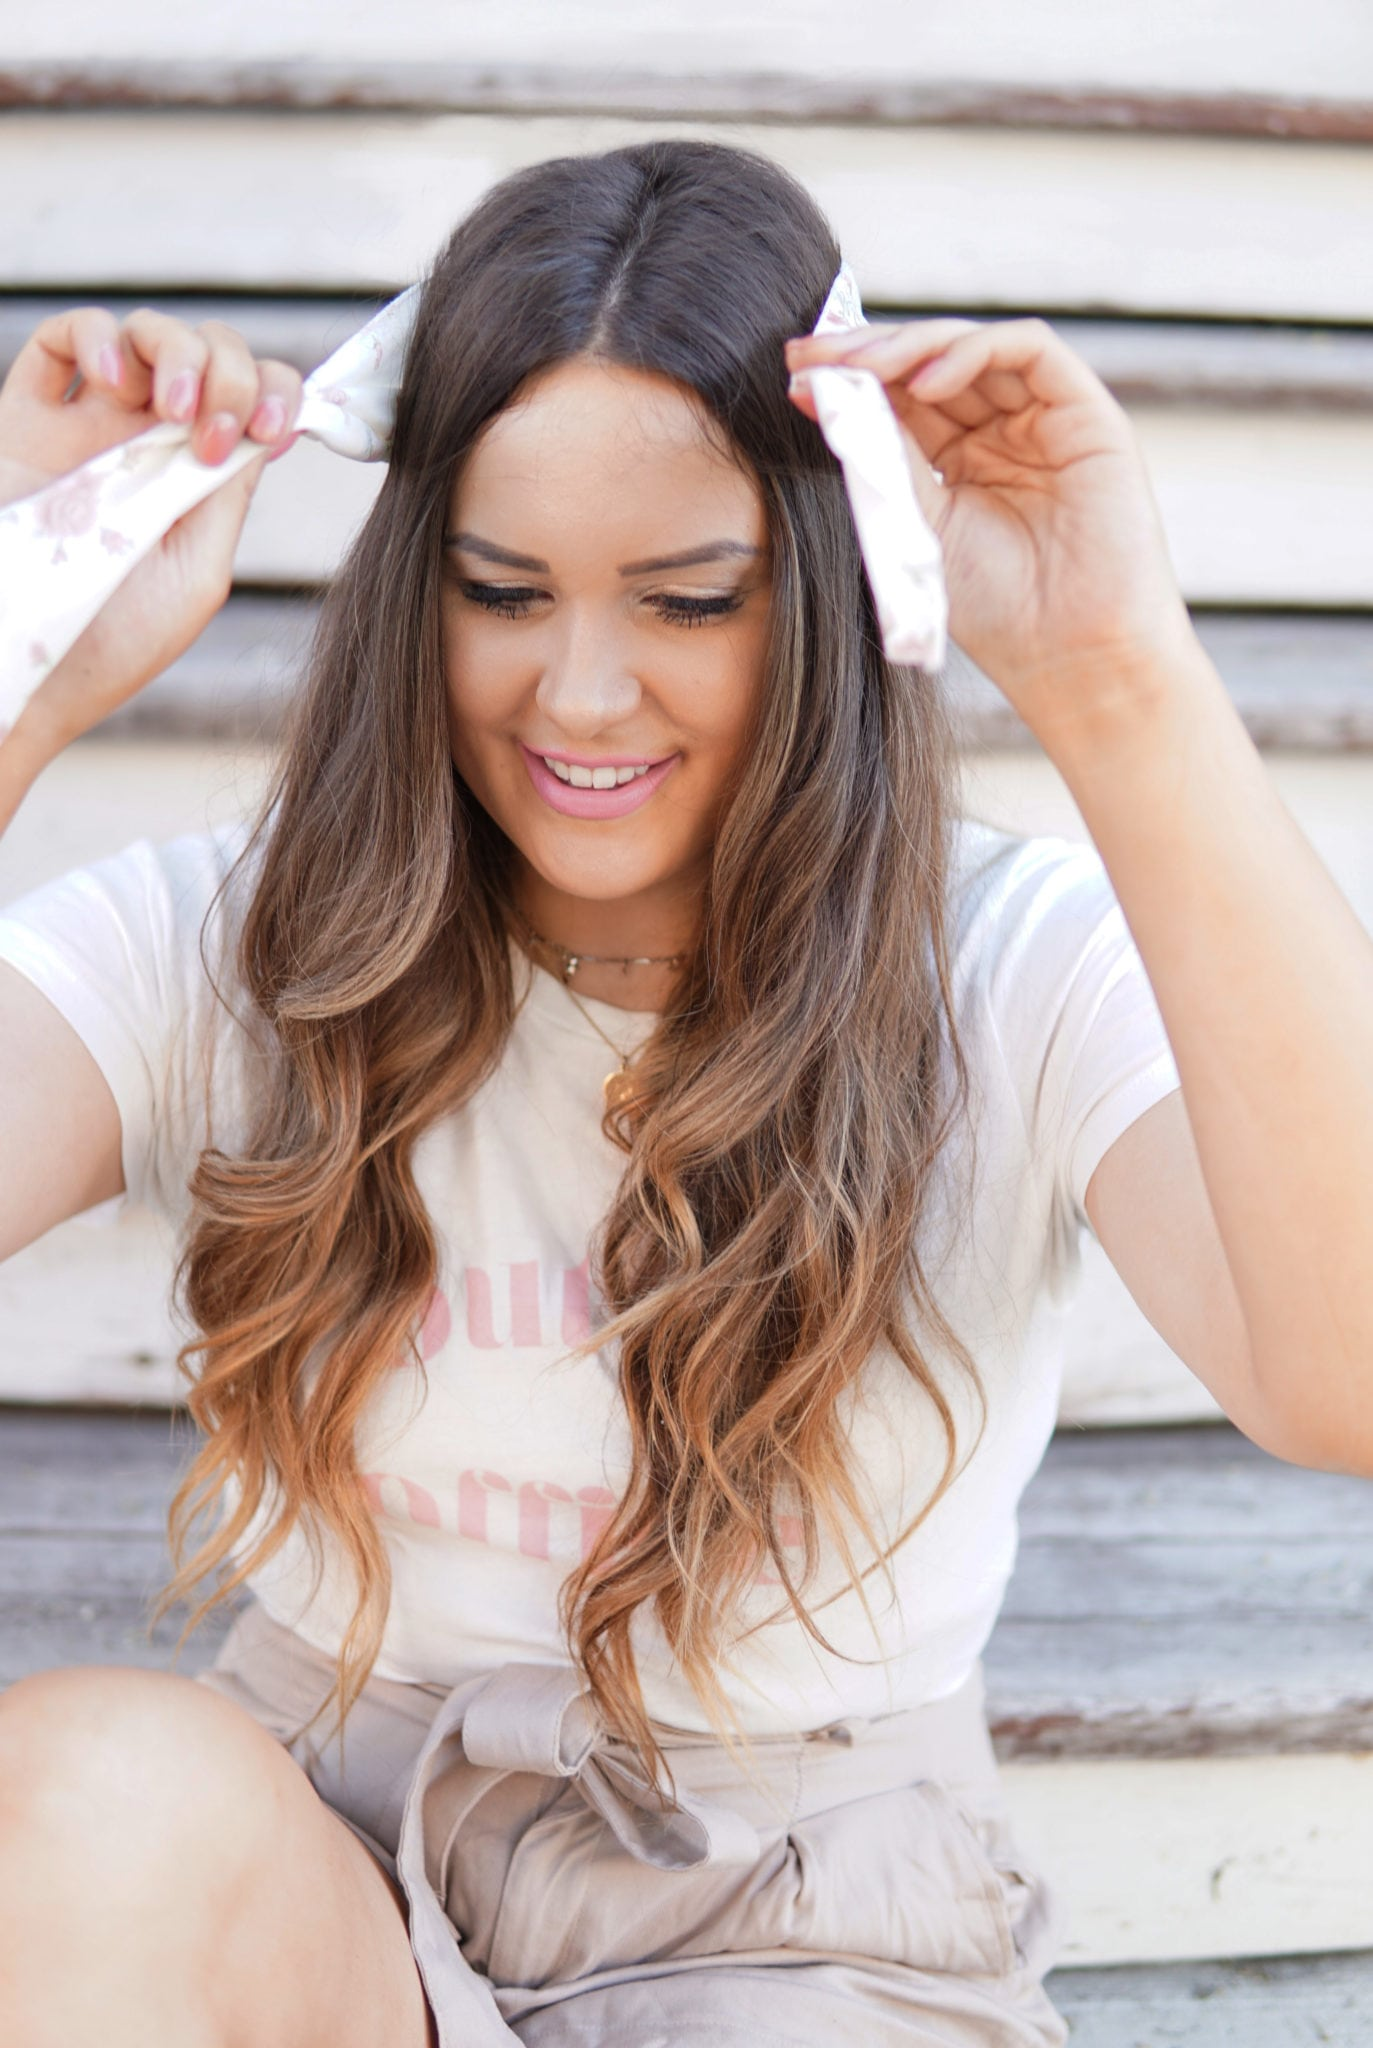 Beauty blogger Mash Elle fun ways to style a scarf in the summer